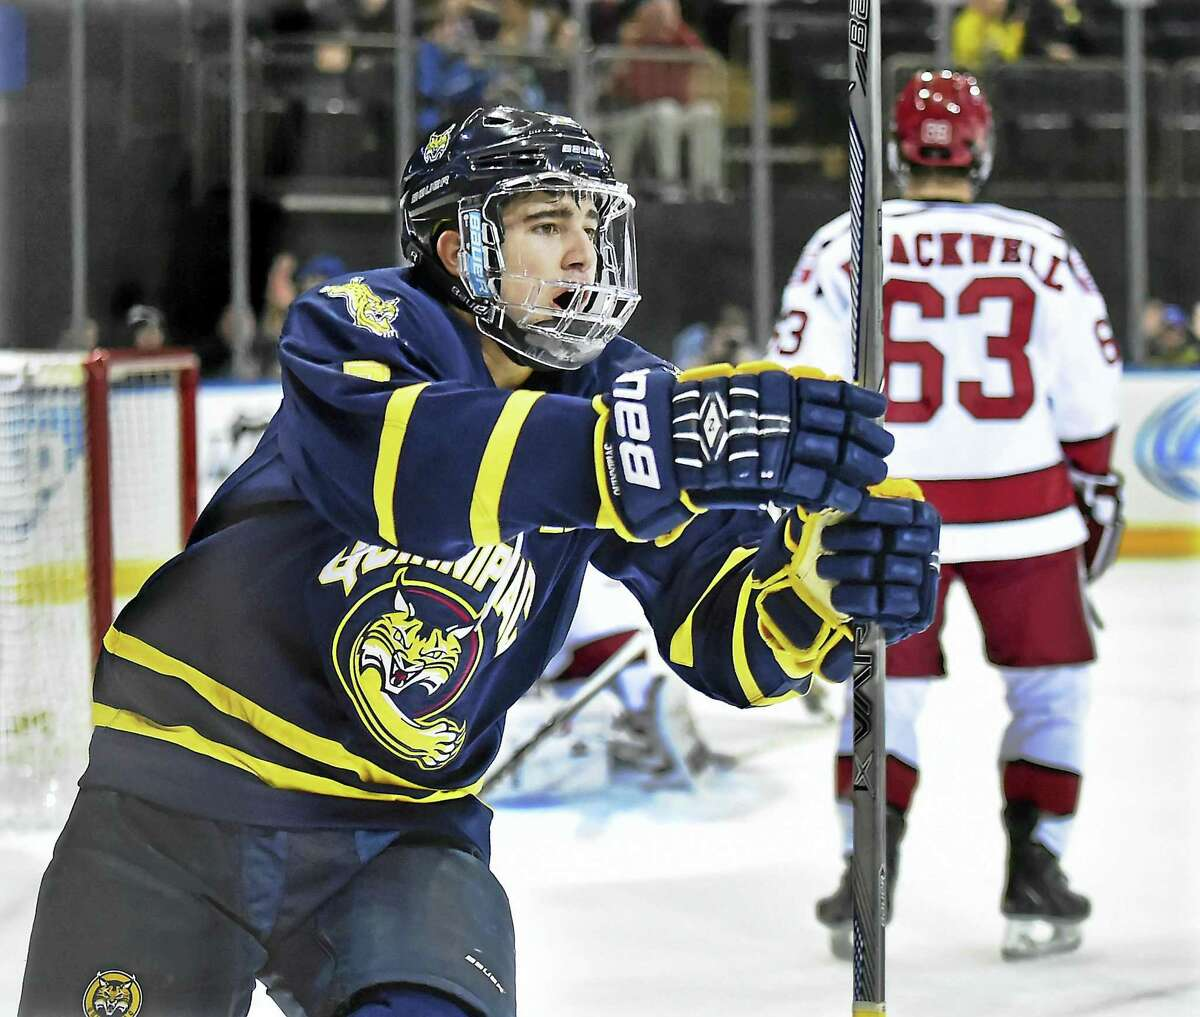 Quinnipiac's Sam Anas celebrates after scoring the third of 4th goals at 8:05 in the first period against Harvard at the Madison Square Garden on Saturday, January 9, 2016. Anas signed two-way contract with St. Louis Blues.